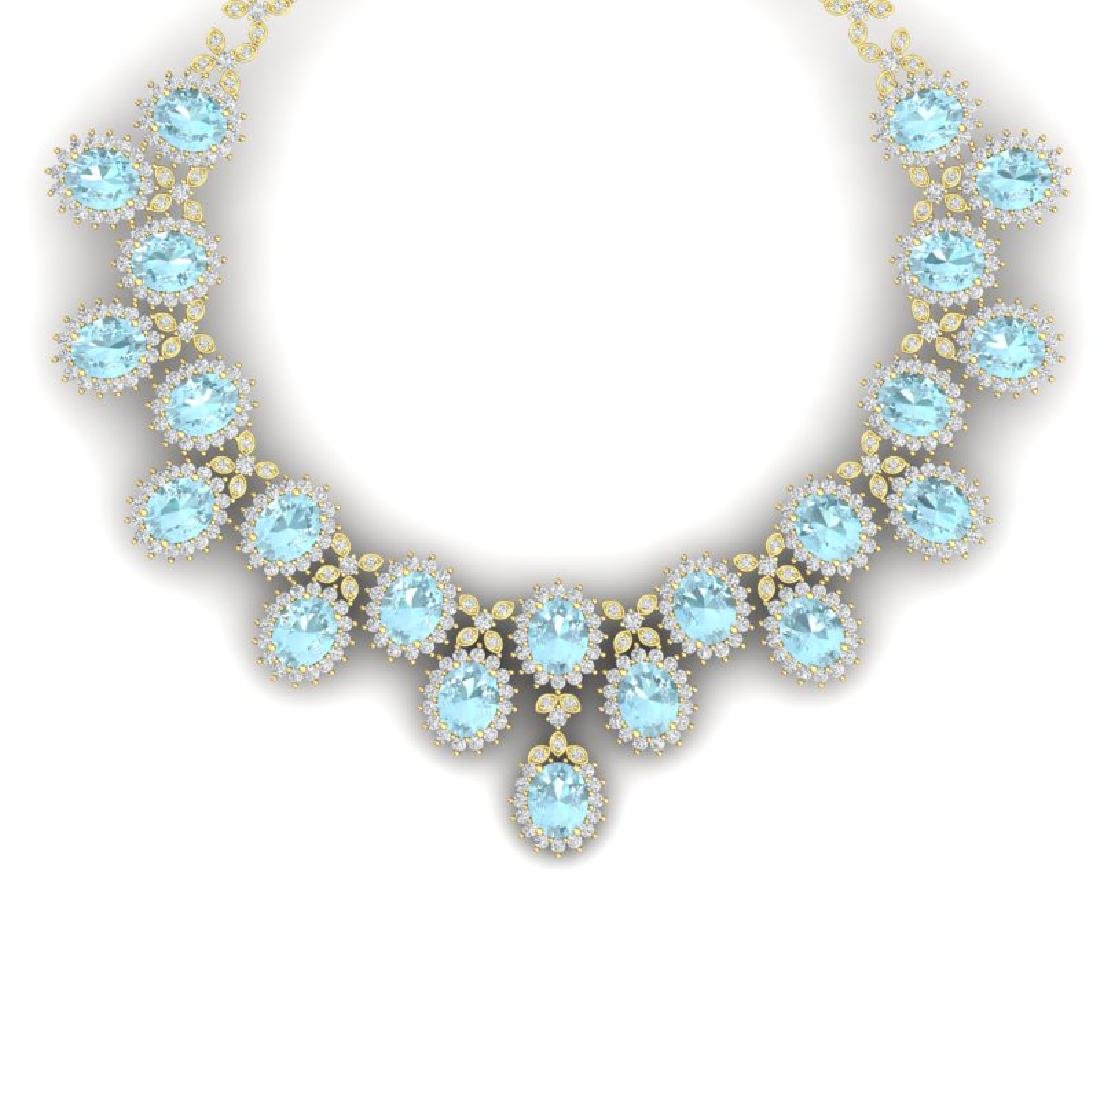 83 CTW Royalty Sky Topaz & VS Diamond Necklace 18K